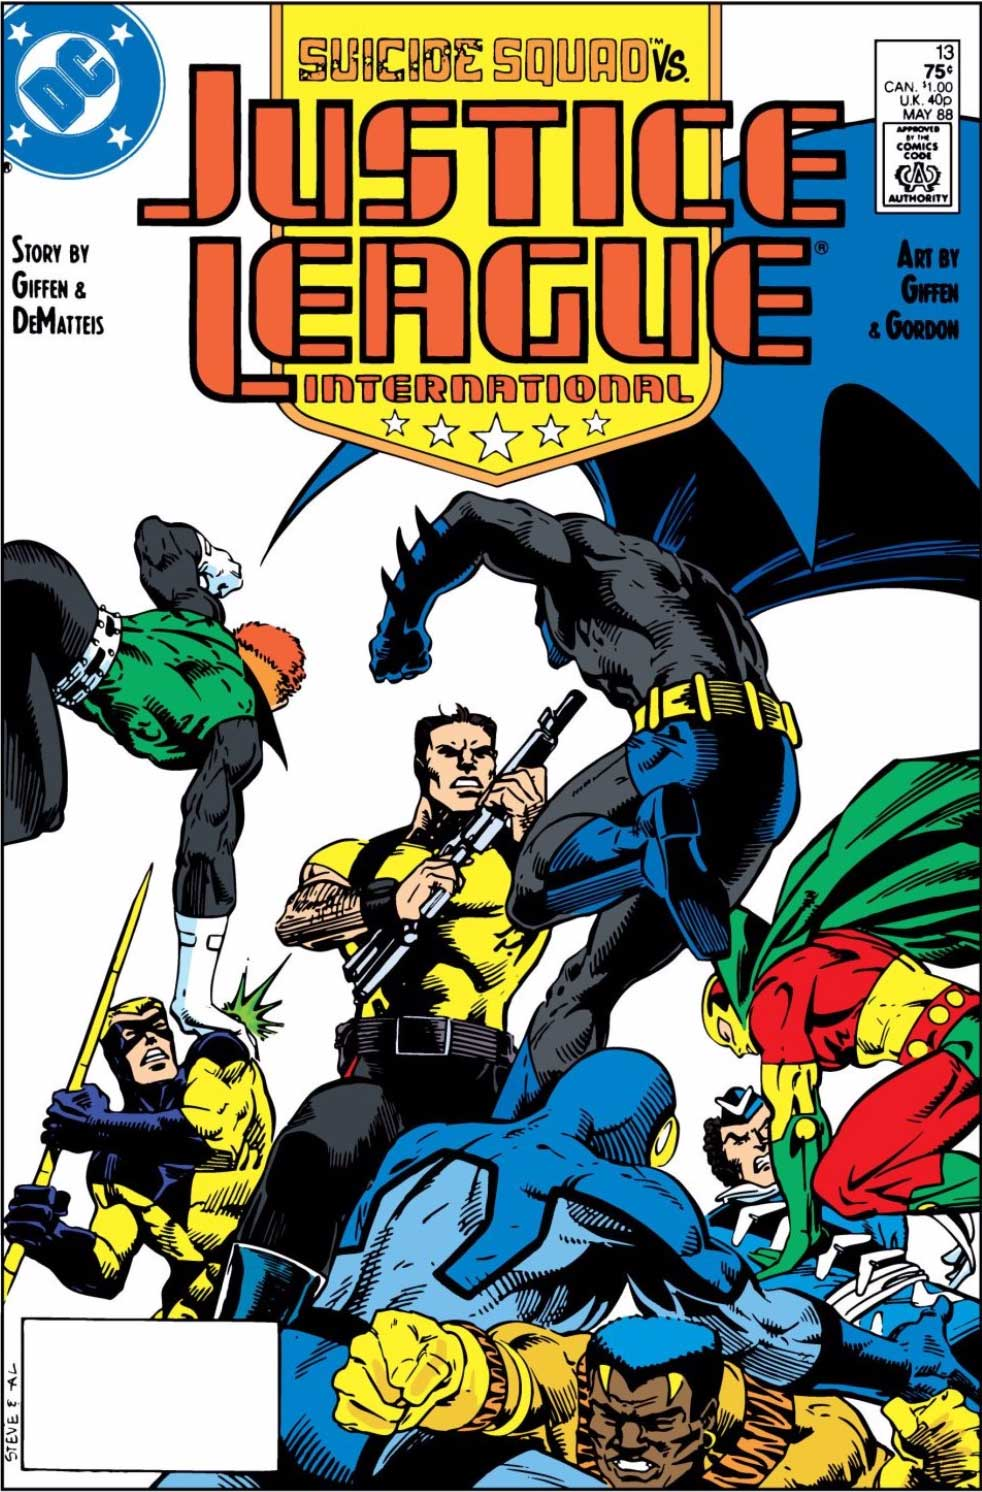 Justice League International #13 cover by Steve Leialoha and Al Gordon